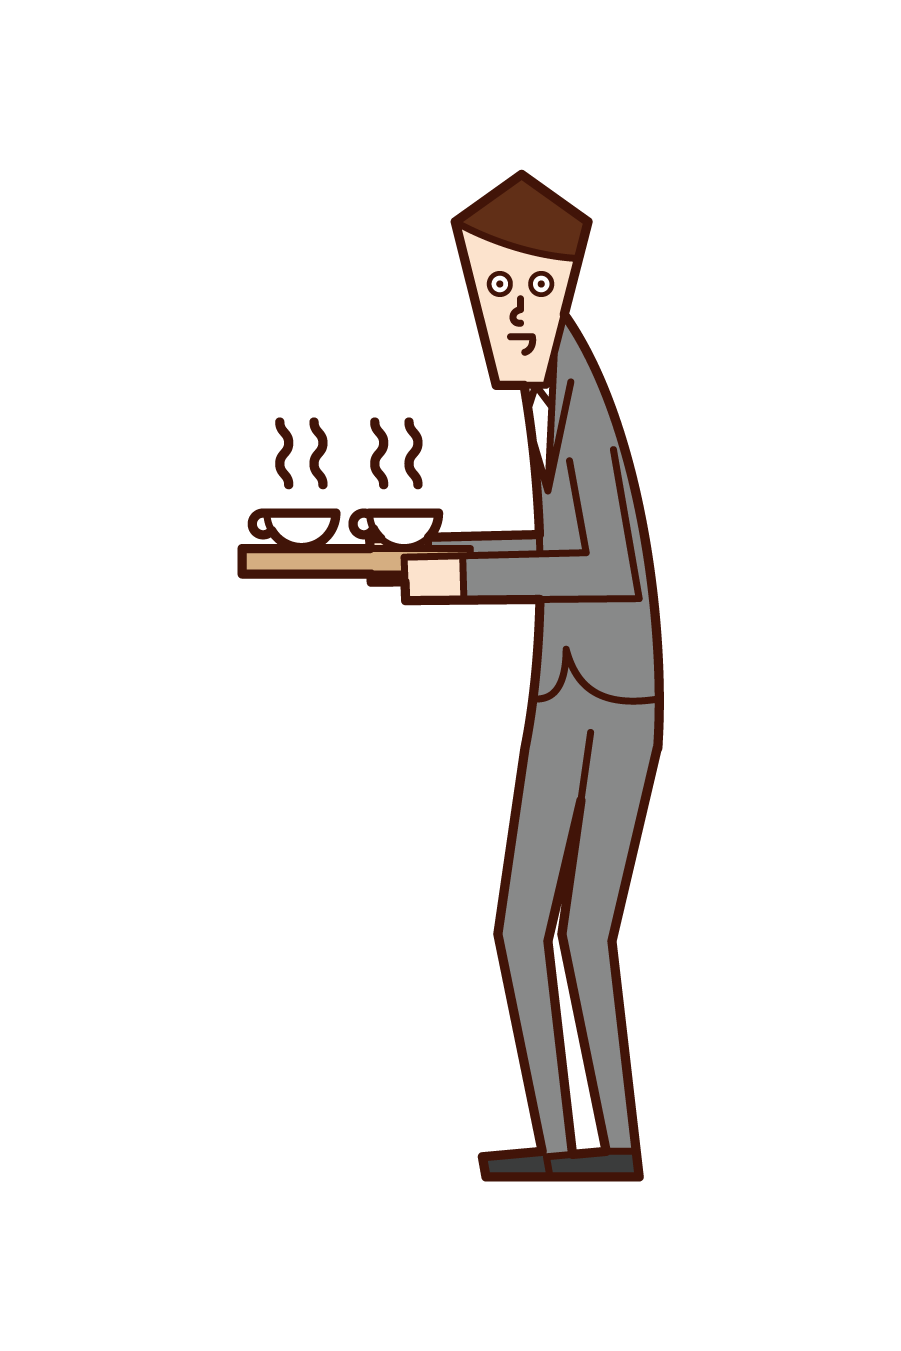 Illustration of a person (man) who serves tea or coffee